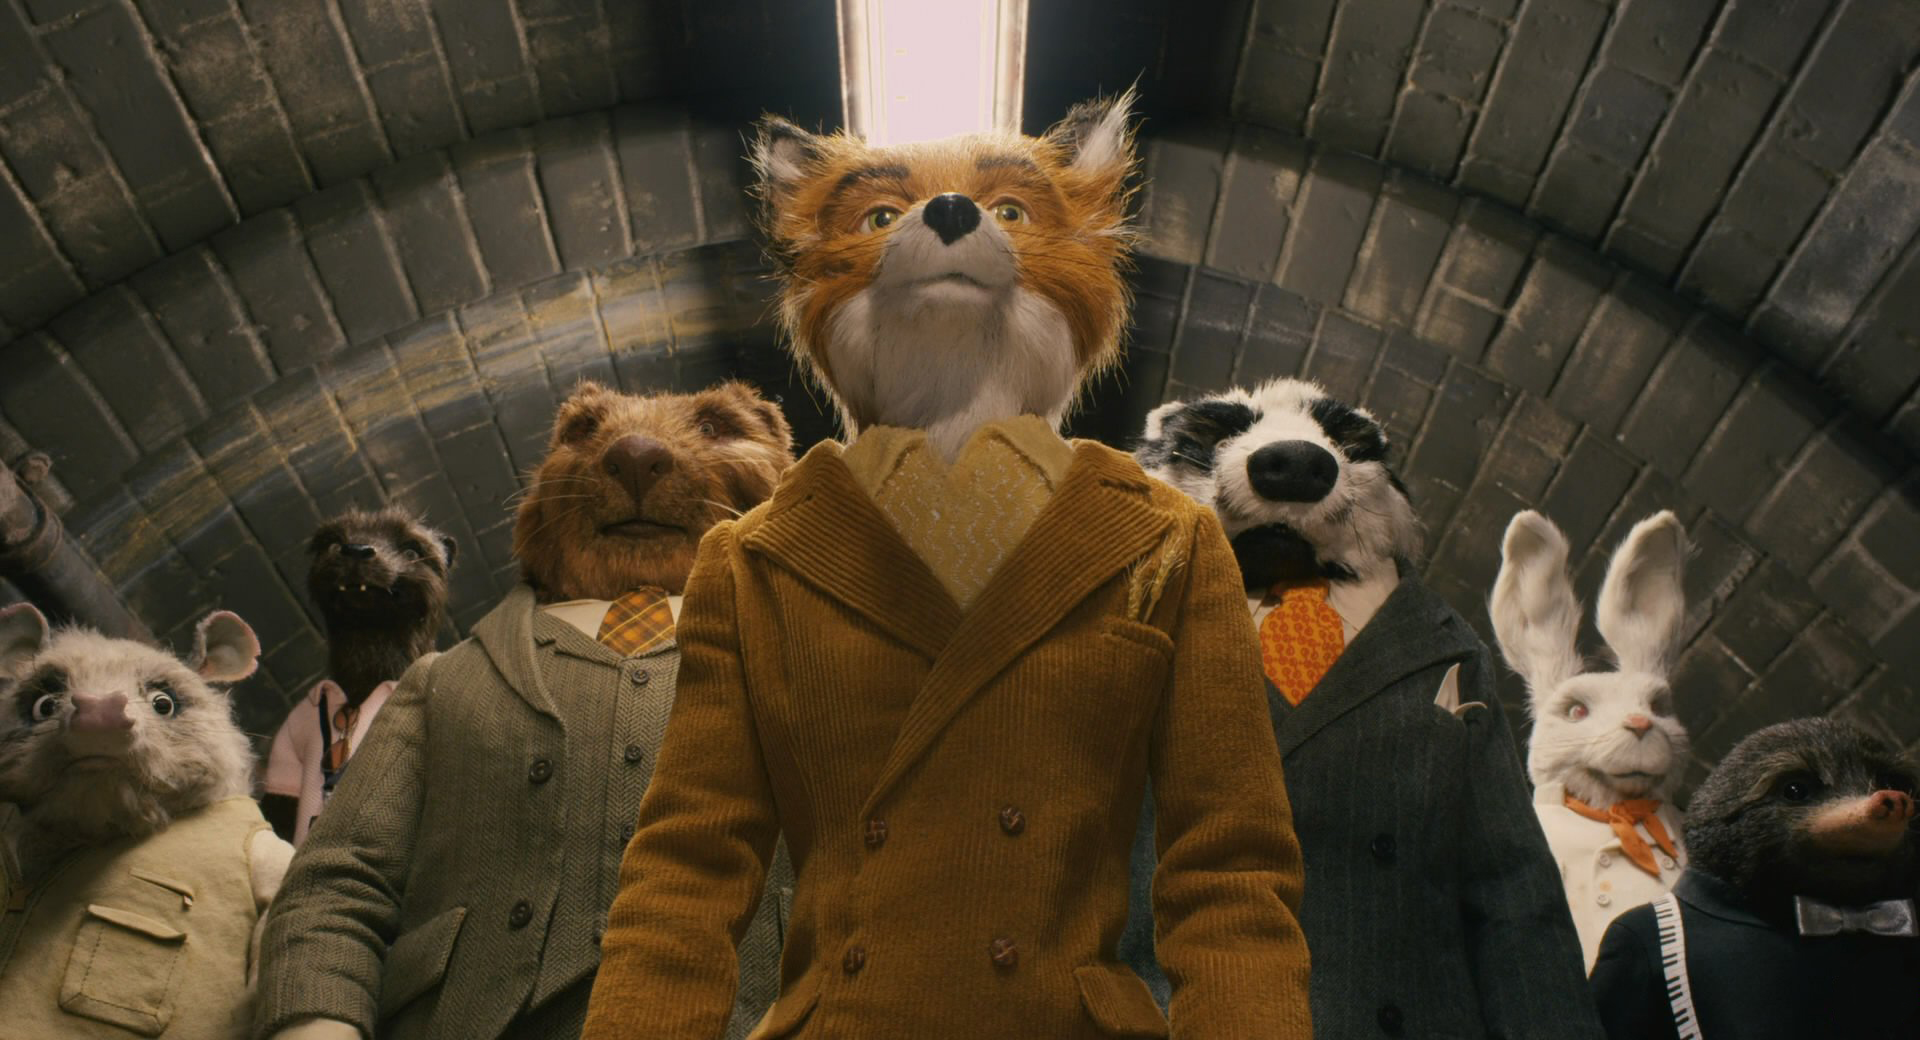 Fantastic mr fox adam wright